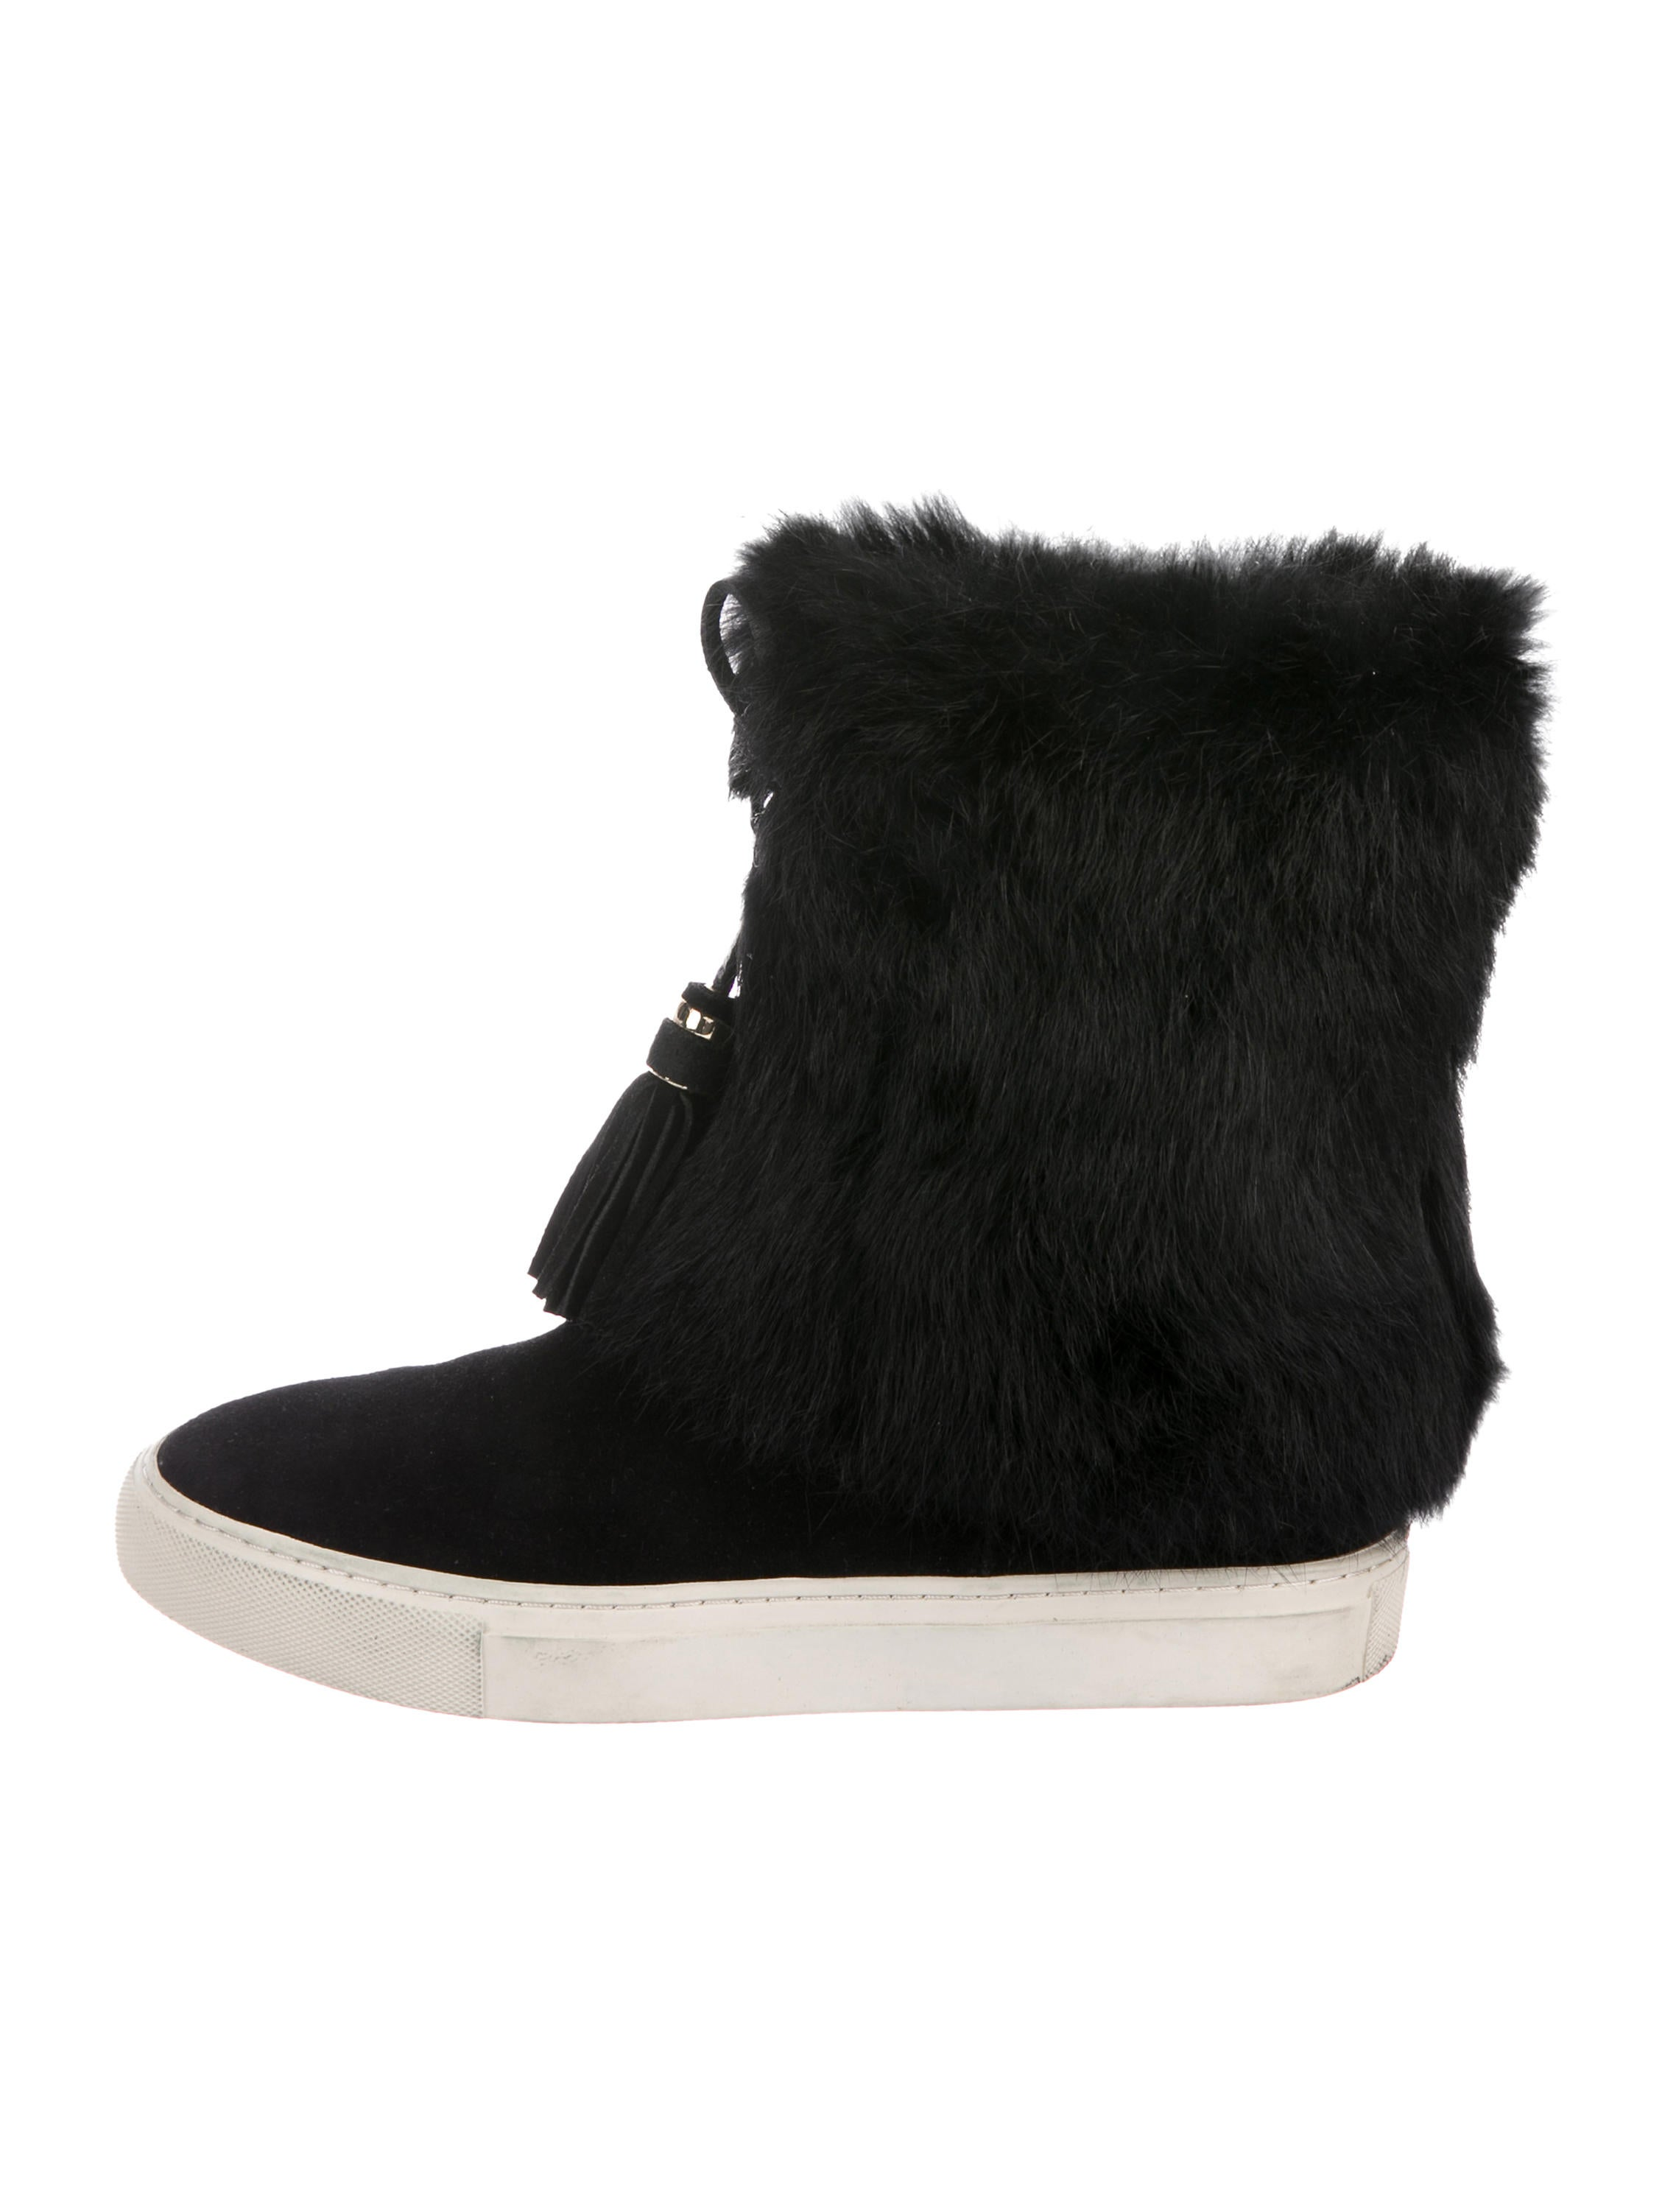 c0ae808fcafd Tory Burch Anjelica Fur-Trimmed Sneaker Boots - Shoes - WTO175230 ...